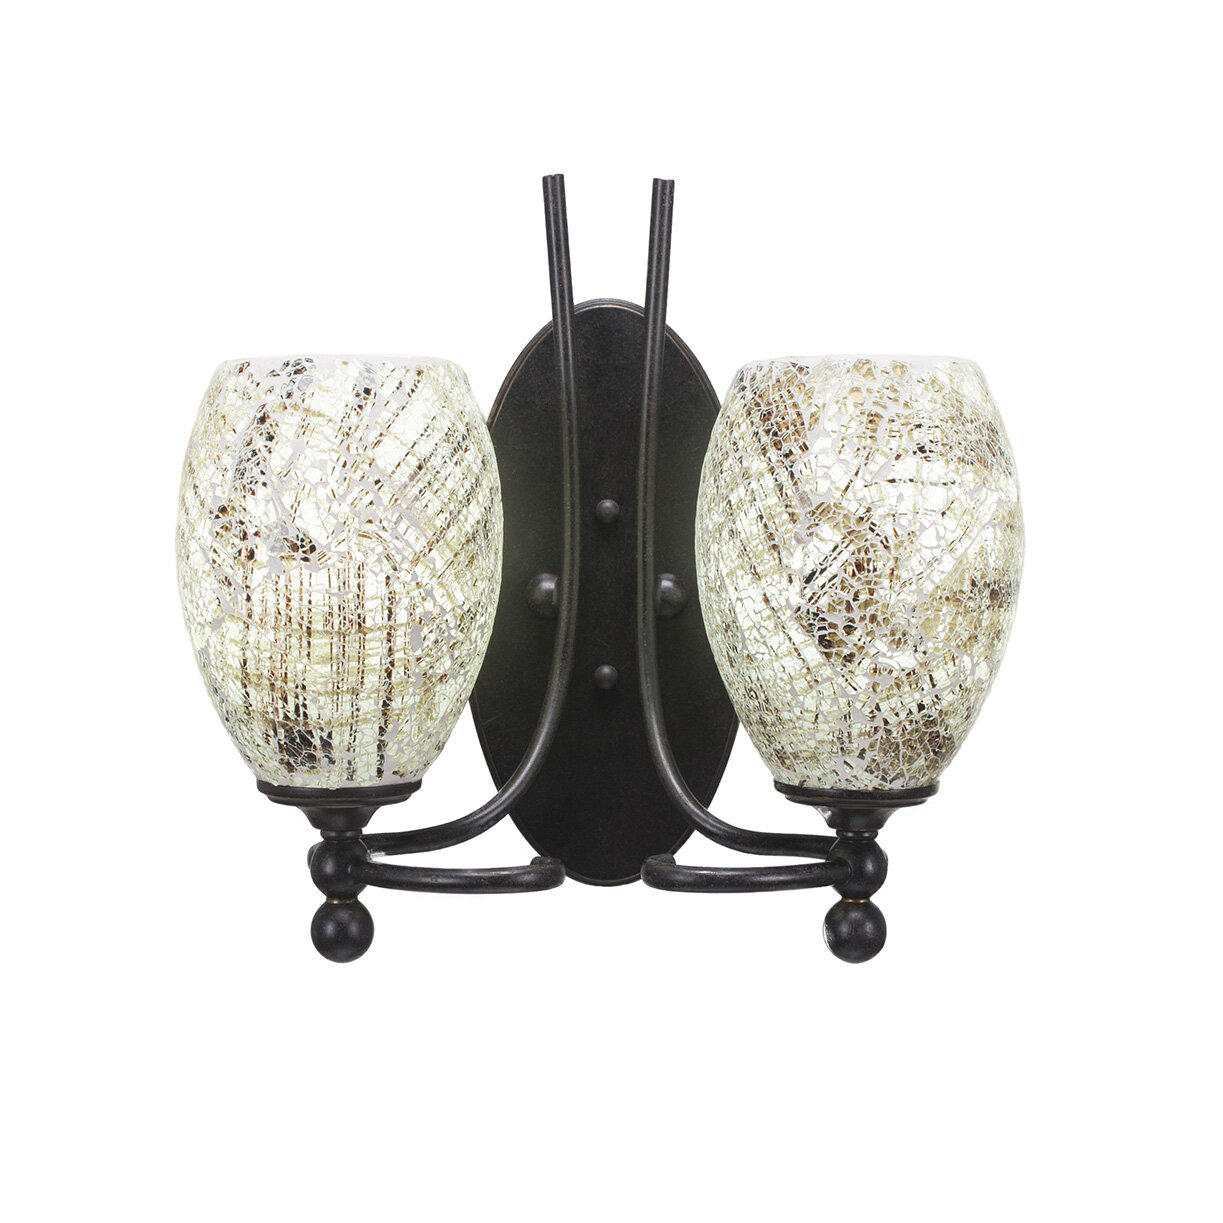 2 Winston Porter Wall Sconces You Ll Love In 2021 Wayfair